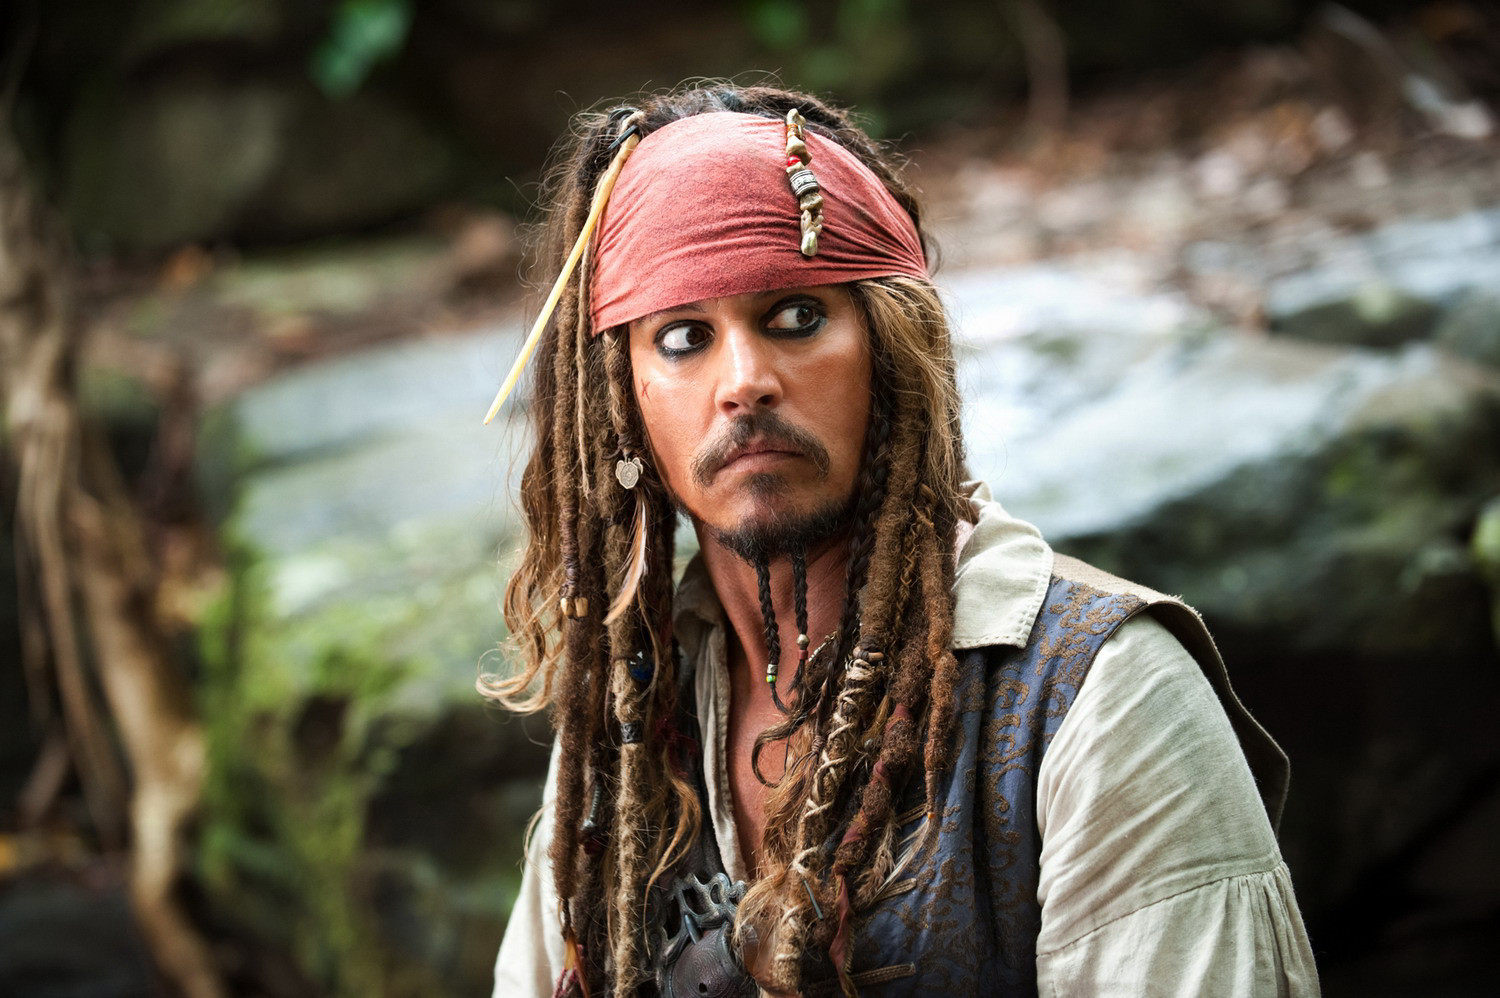 Pirates Producer: Johnny Depp carries his Jack Sparrow costume everywhere: 'It's a thing he really loves'